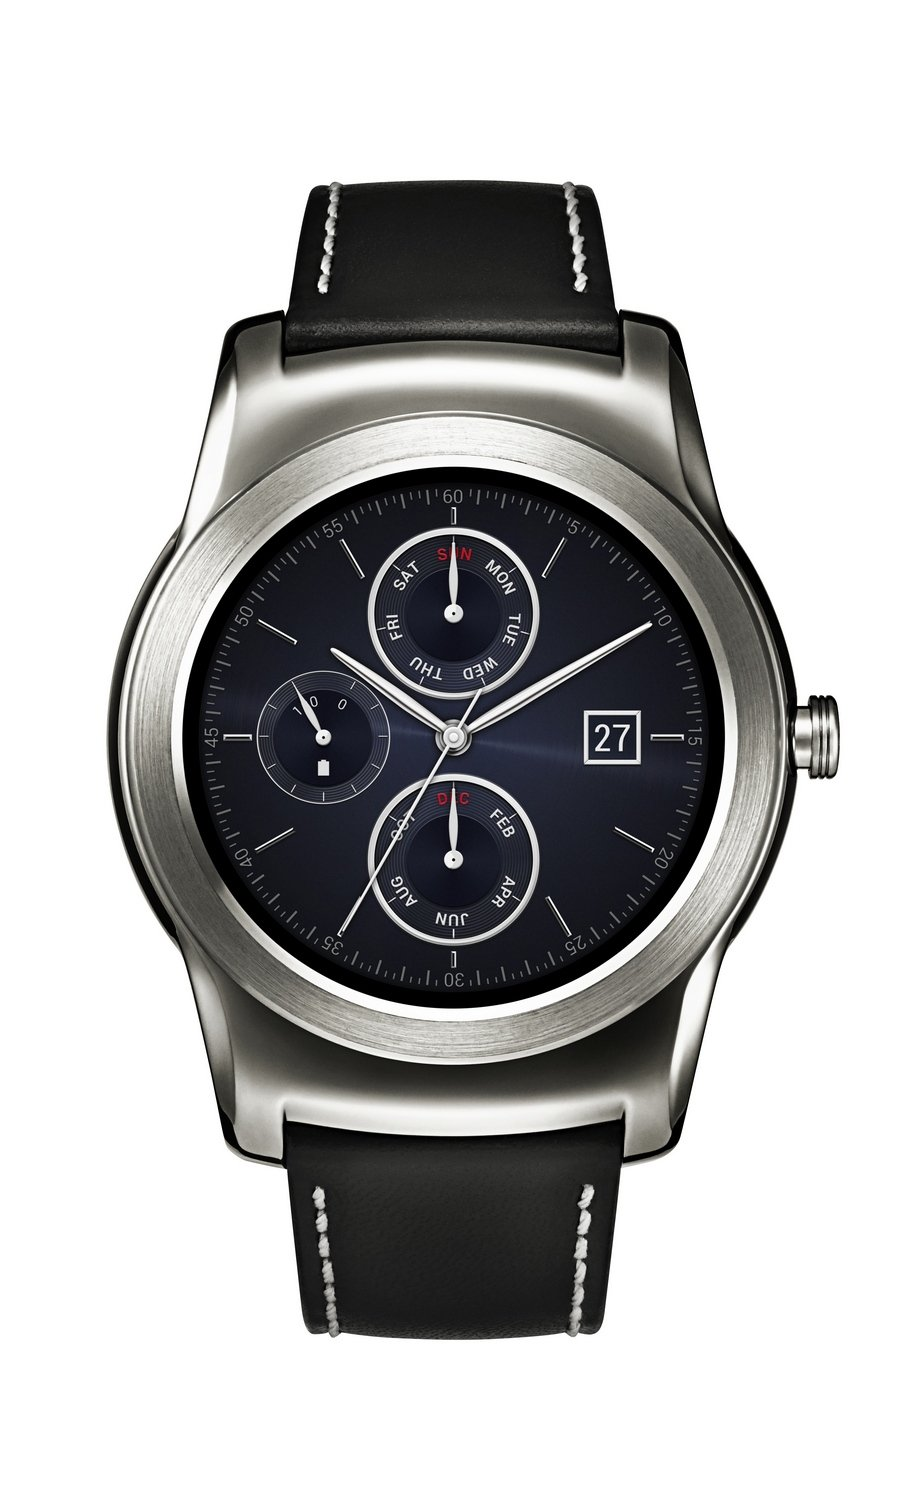 LG W150 Urbane: Best Smartwatch Under $300